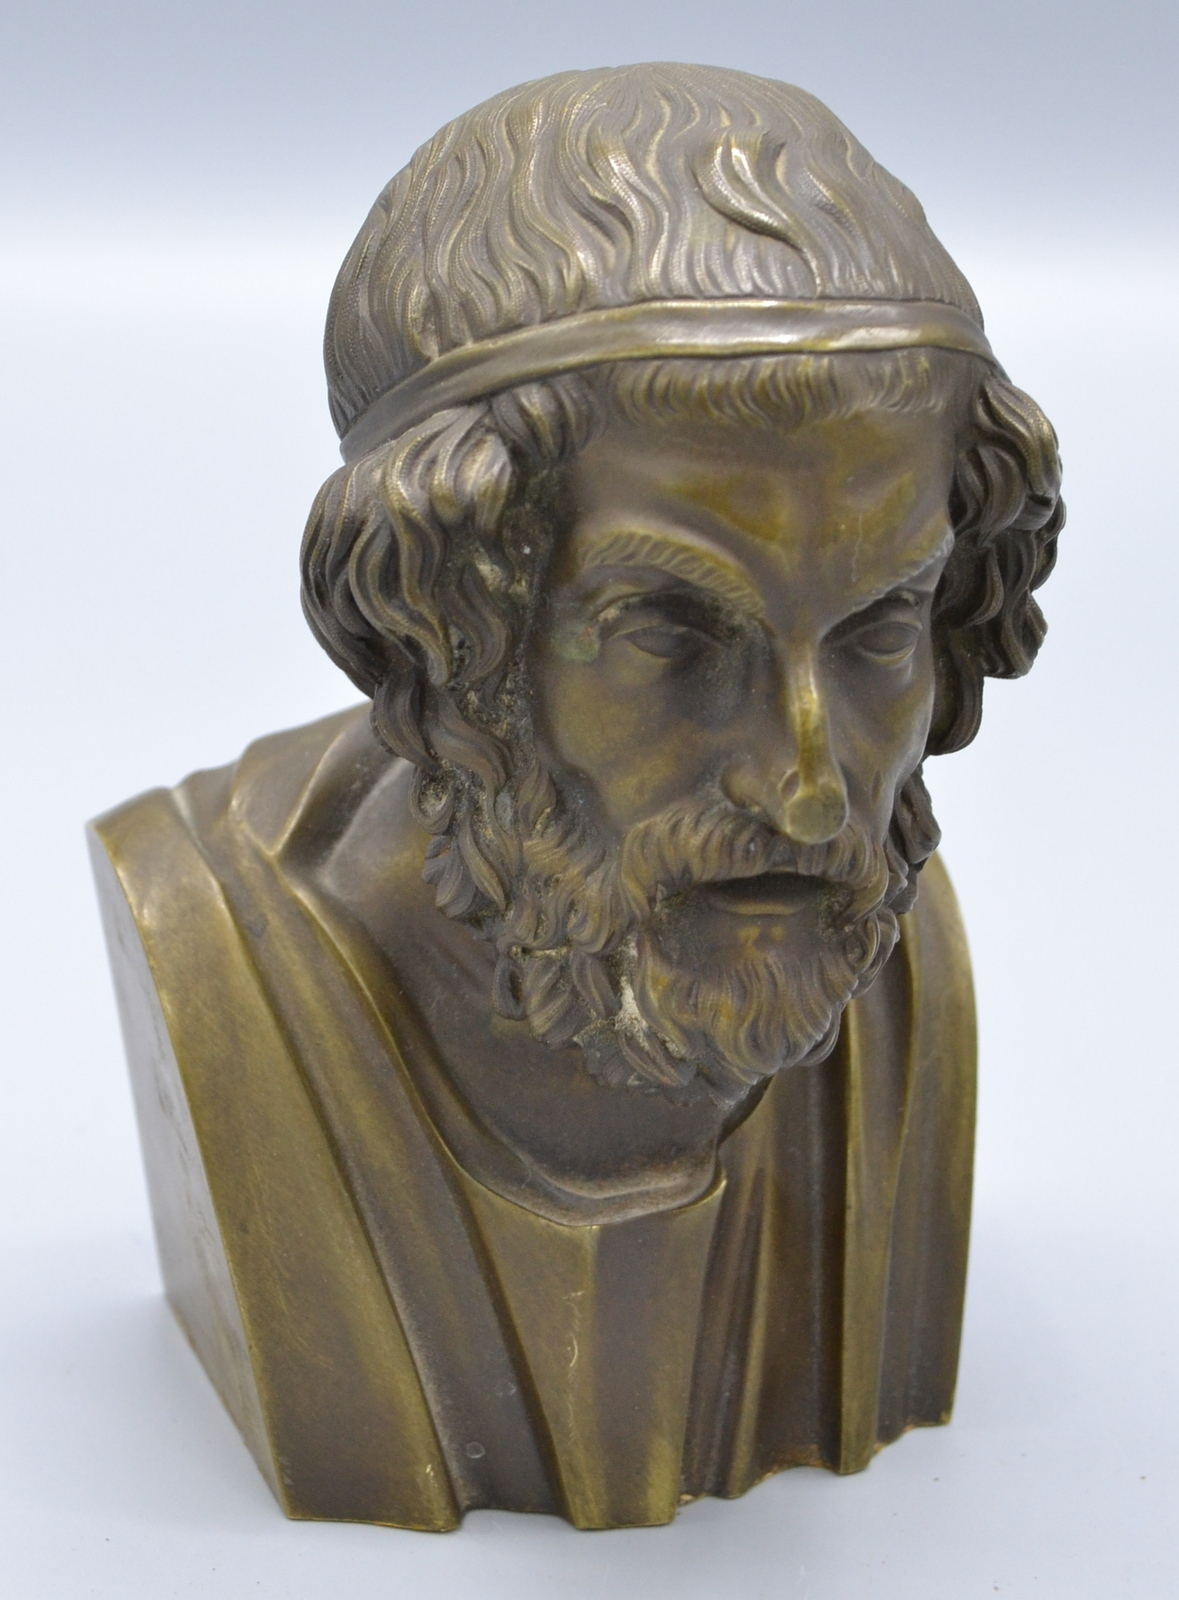 Lot 45 - A bronze bust of Homer, height 14.5cm.